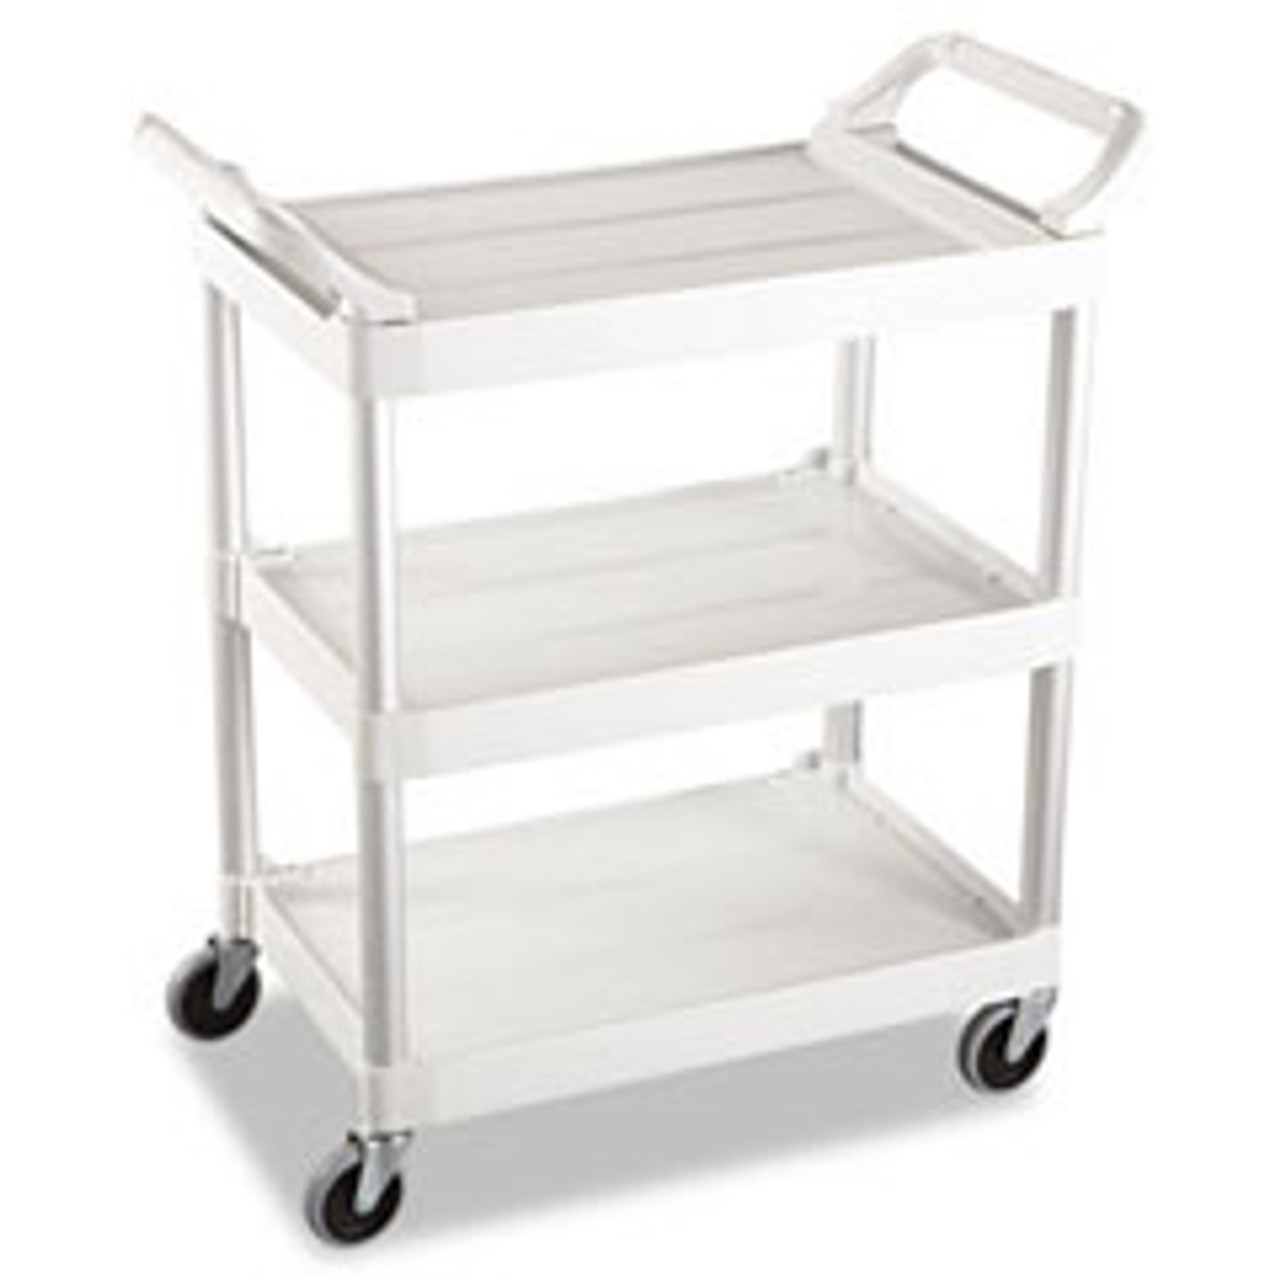 Rubbermaid 3424-88 OWH Commercial 3-Shelf Service Cart, Off-White